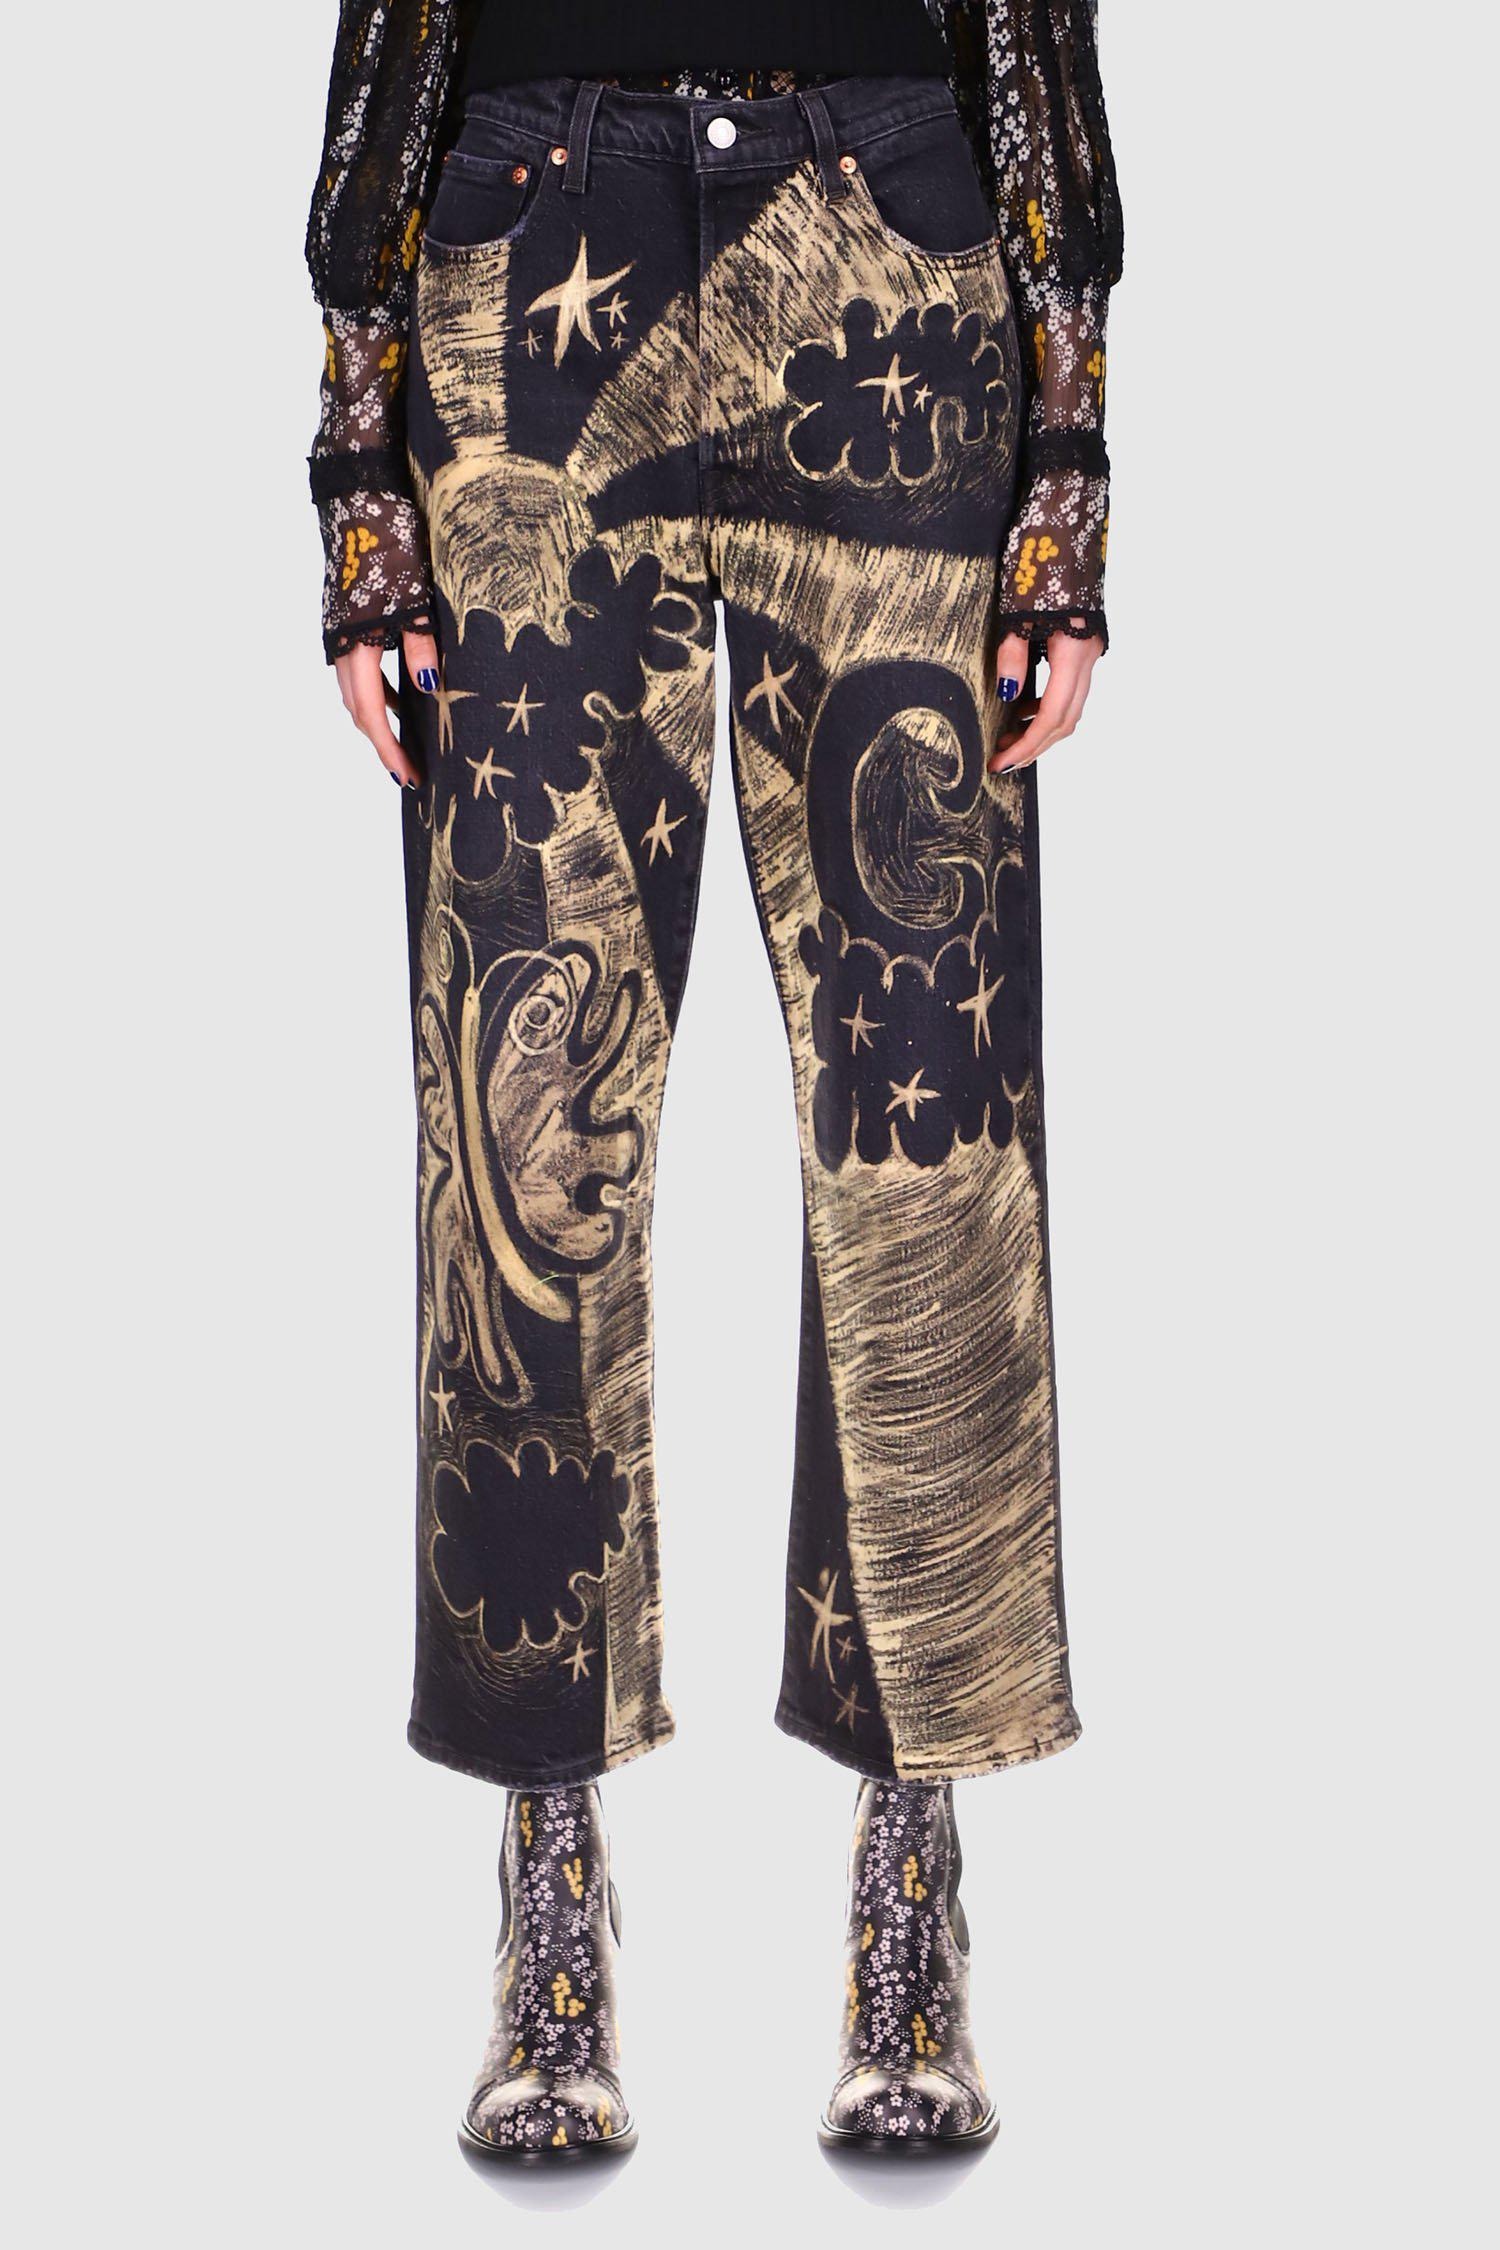 Cosmic Hand Painted Jeans Black